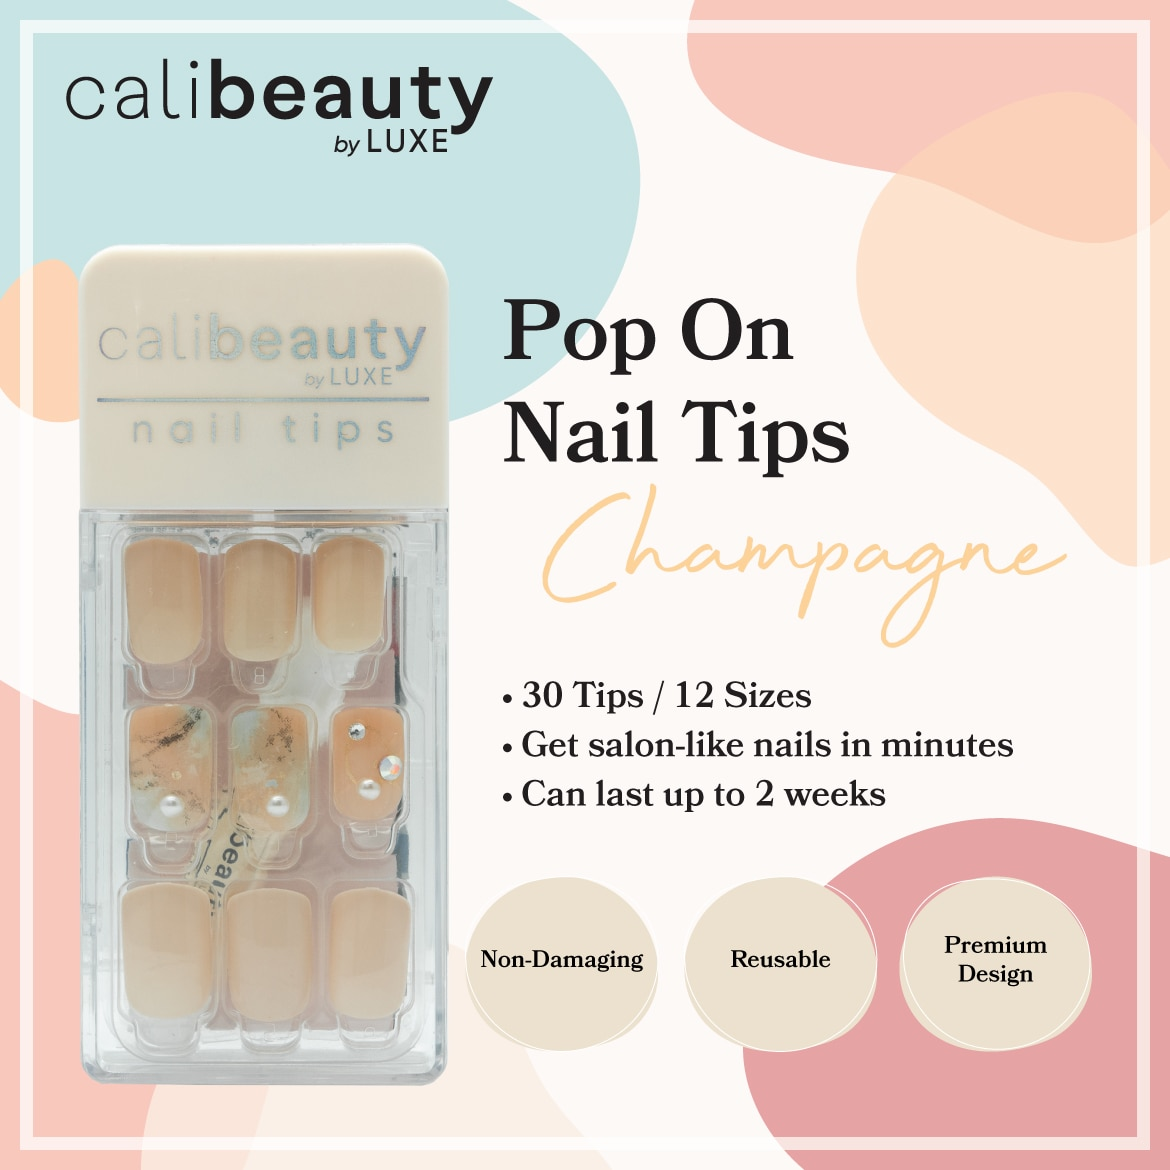 CALI BEAUTYNail Tips Champagne 30 Tips,Nail Polish and AccessoriesKBeauty